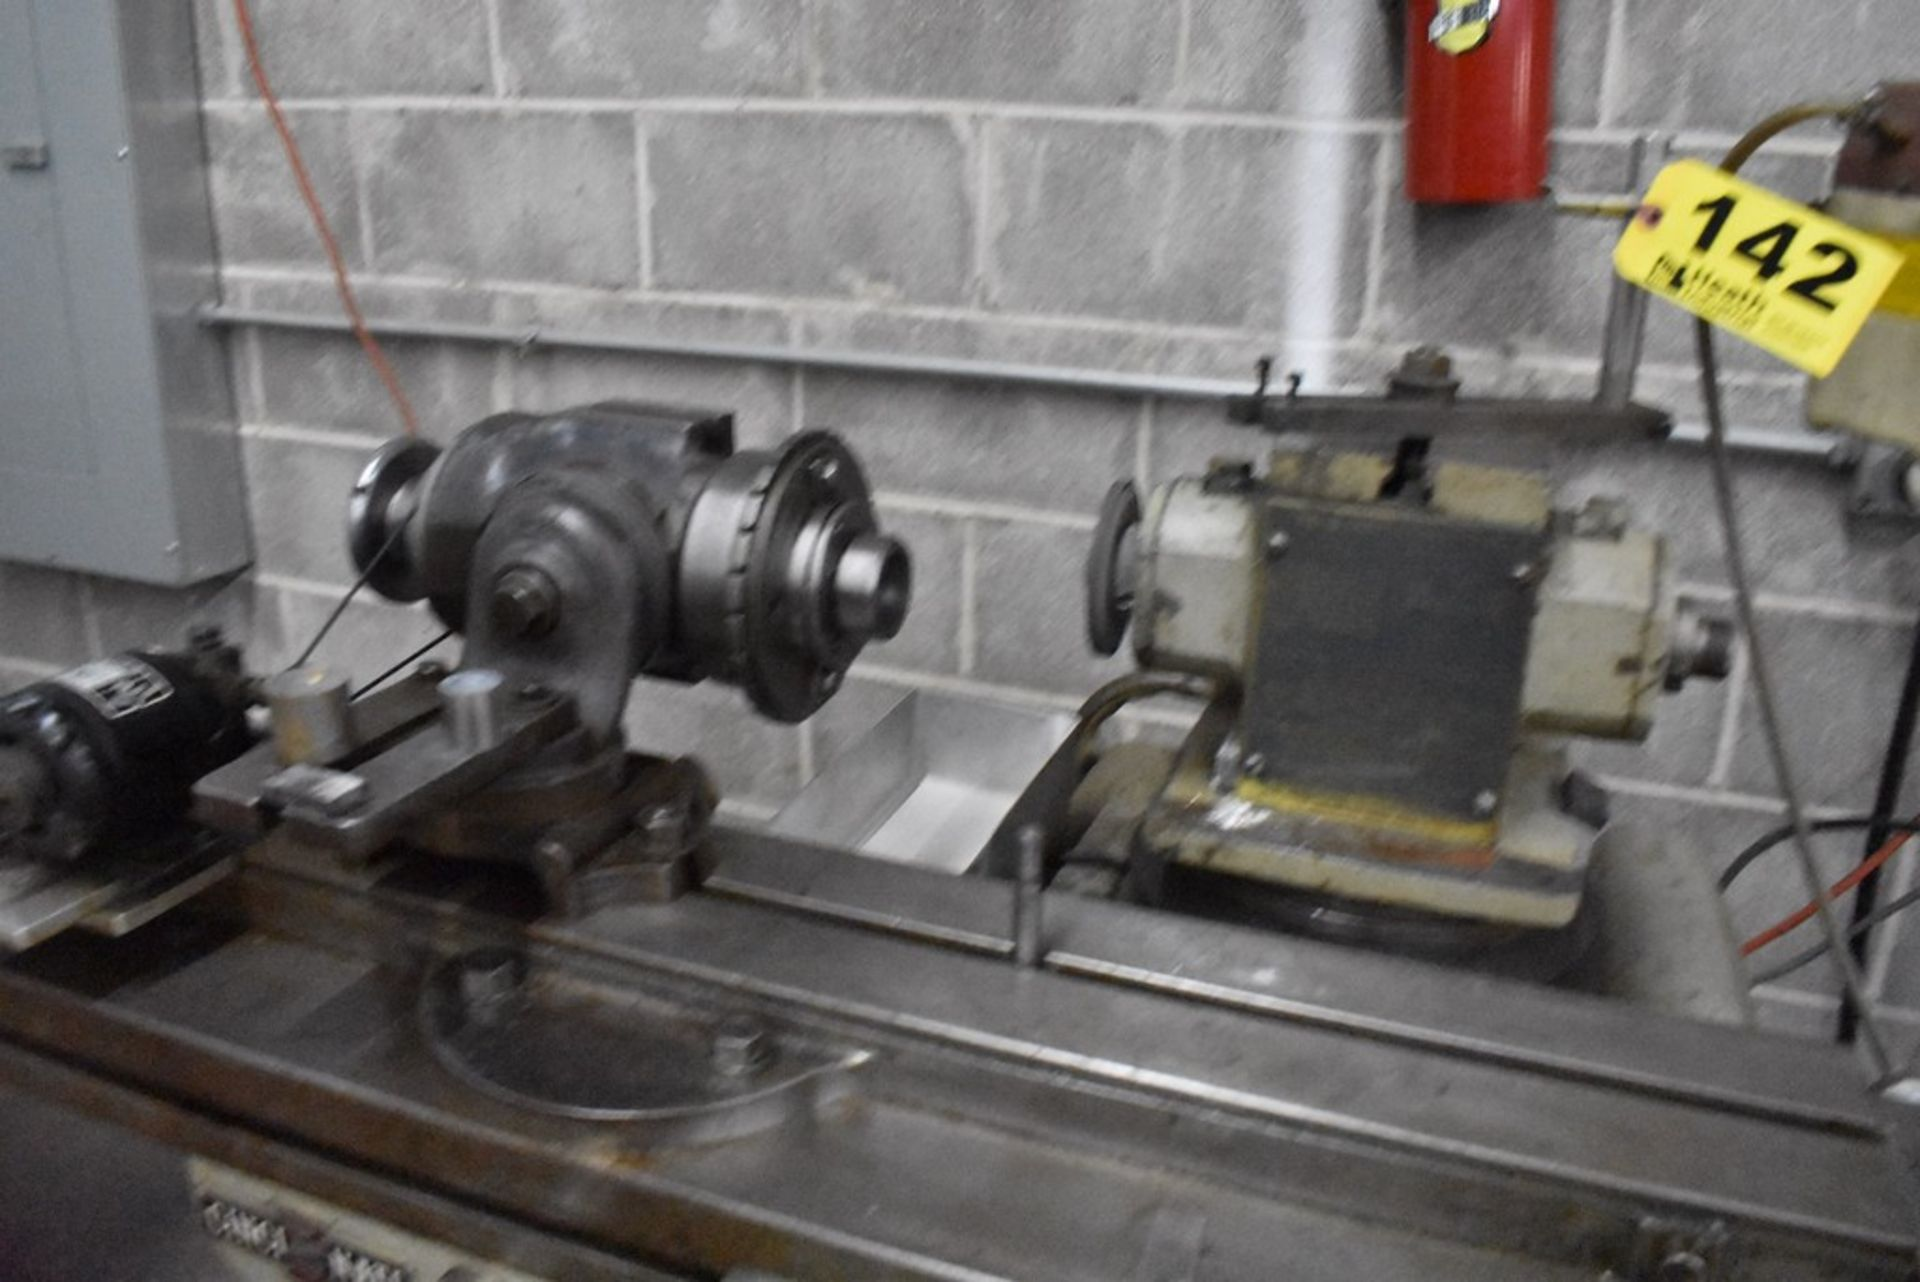 CINCINNATI NO. 2 TOOL AND CUTTER GRINDER, S/N 1D2T1Z-771, WITH MOTORIZED WORK HEAD - Image 3 of 14